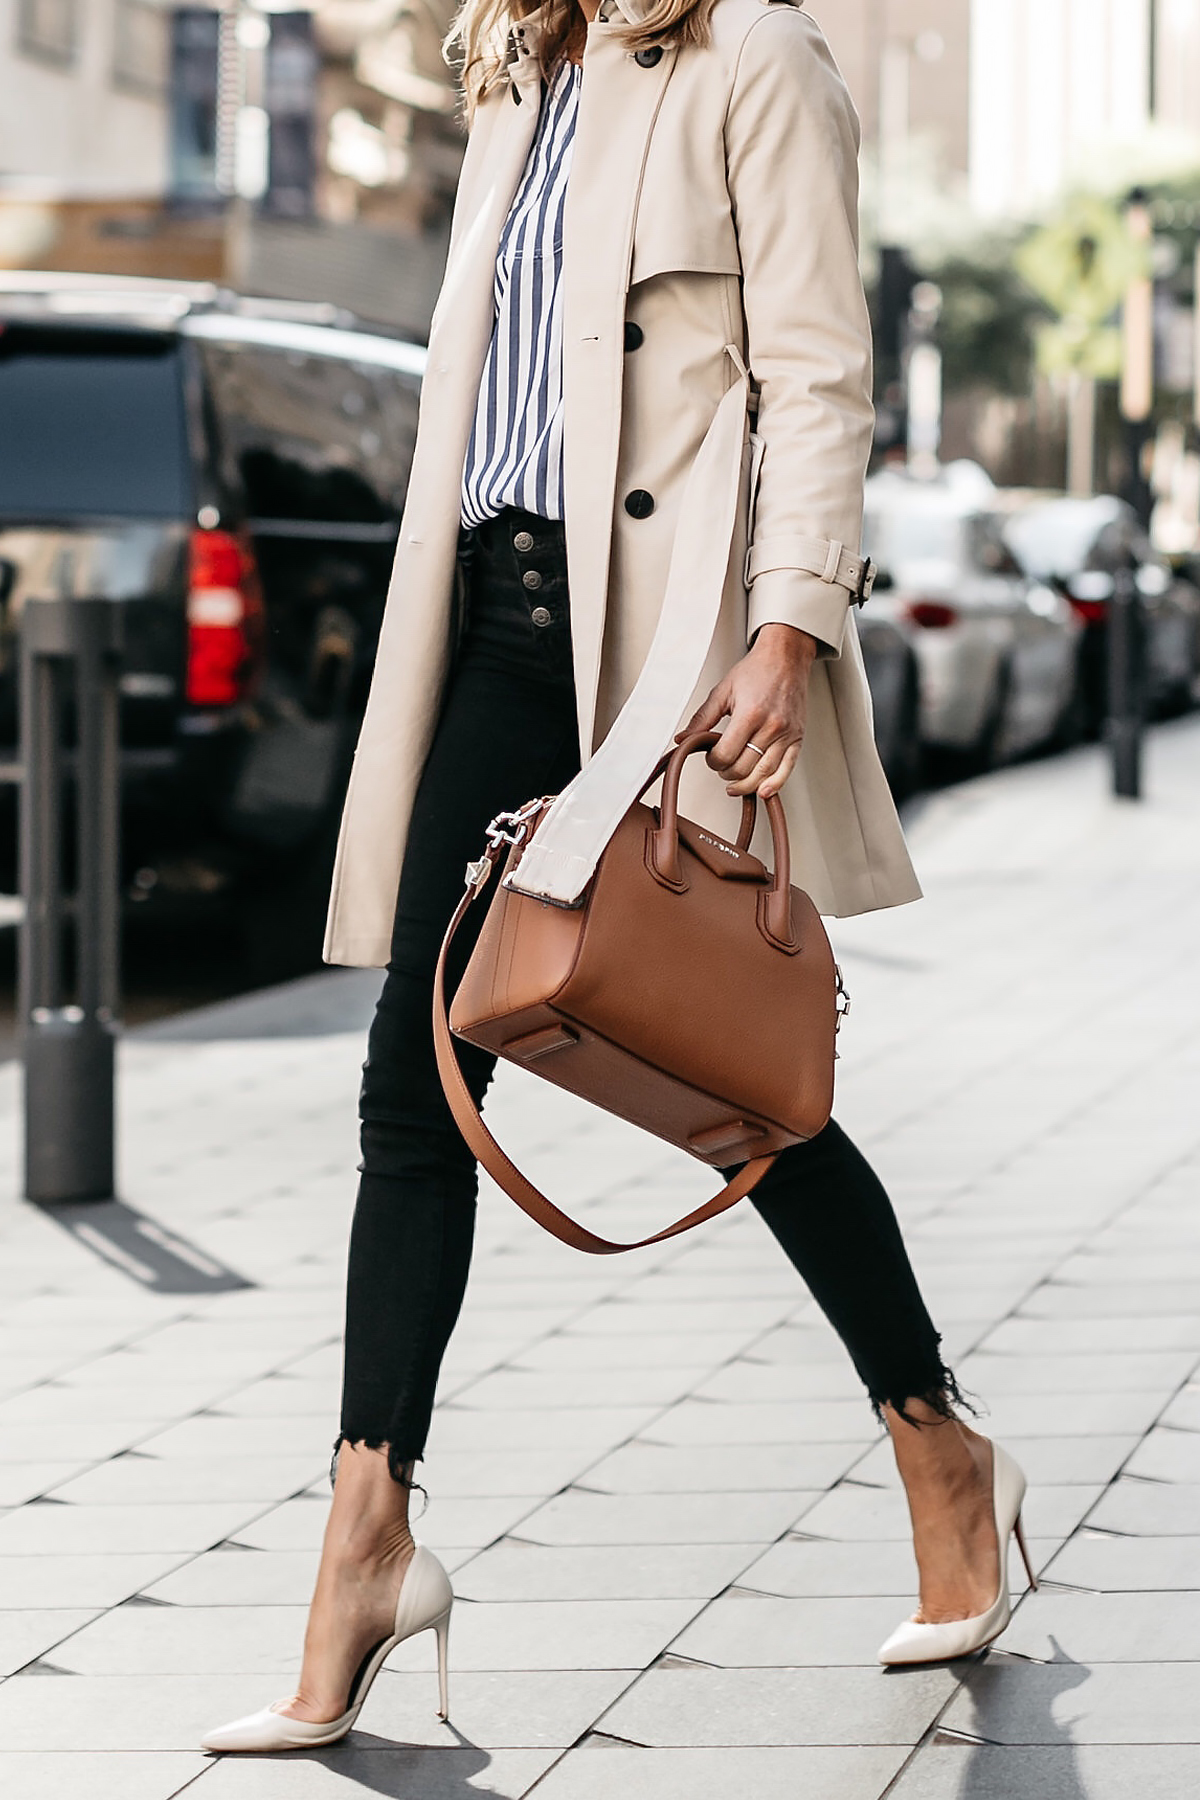 Woman Wearing Club Monaco Trench Coat Jcrew Blue White Stripe Top Madewell Black Ripped Skinny Jeans Christian Louboutin White Pumps Givenchy Antigona Small Cognac Satchel Fashion Jackson Dallas Blogger Fashion Blogger Street Style